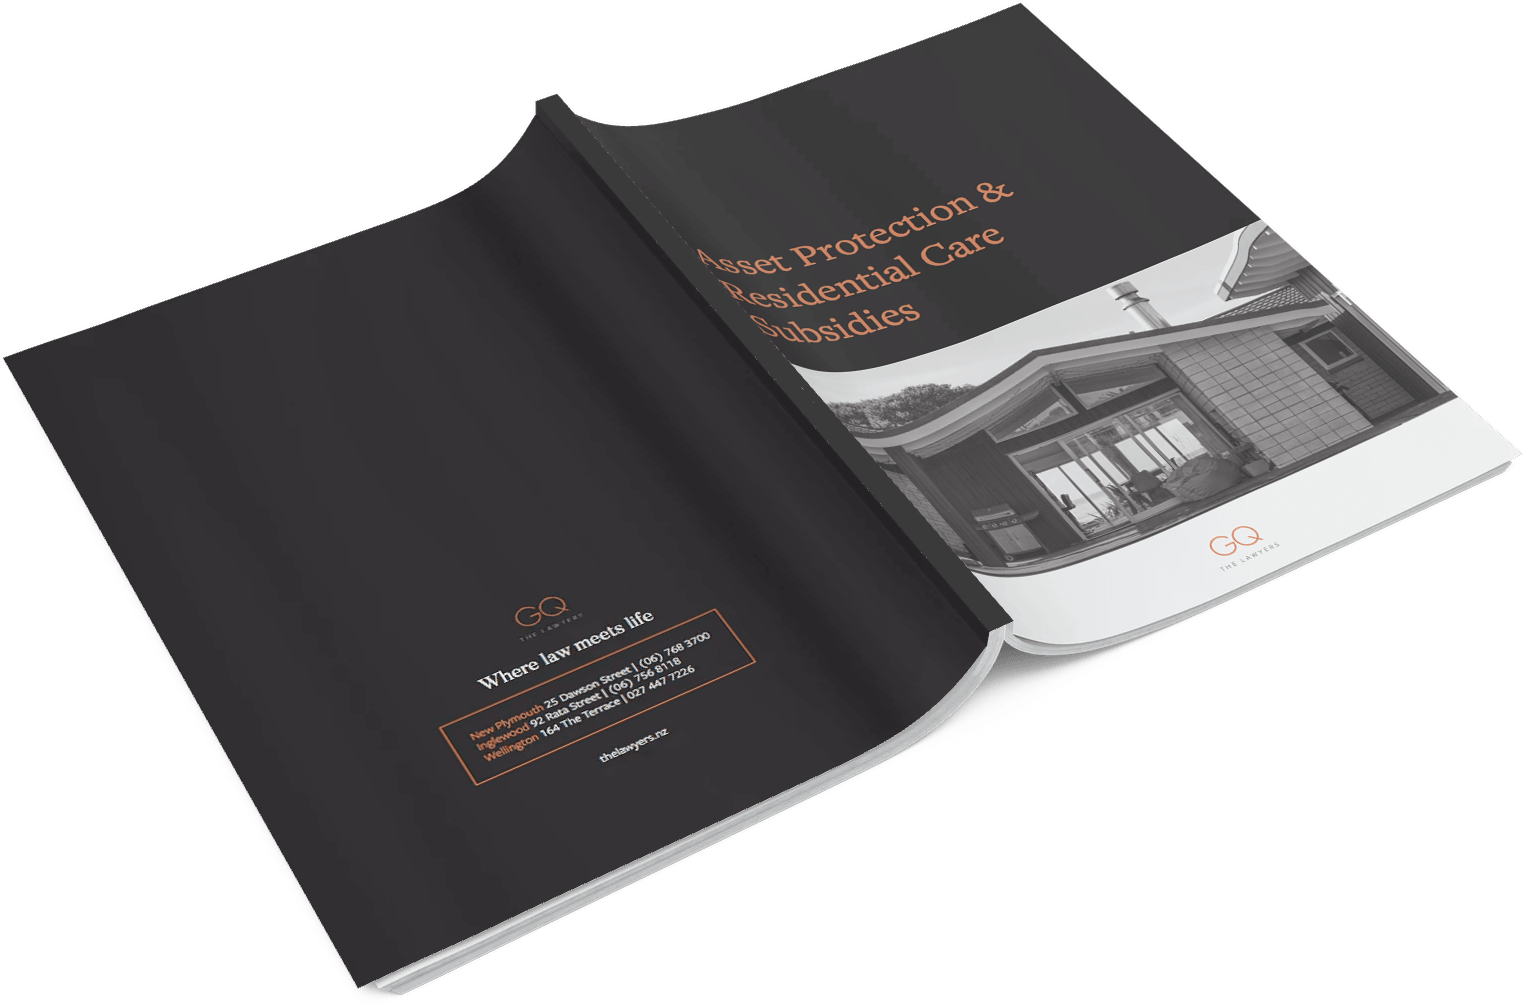 Download this booklet to learn more about setting up a trust to protect your assets